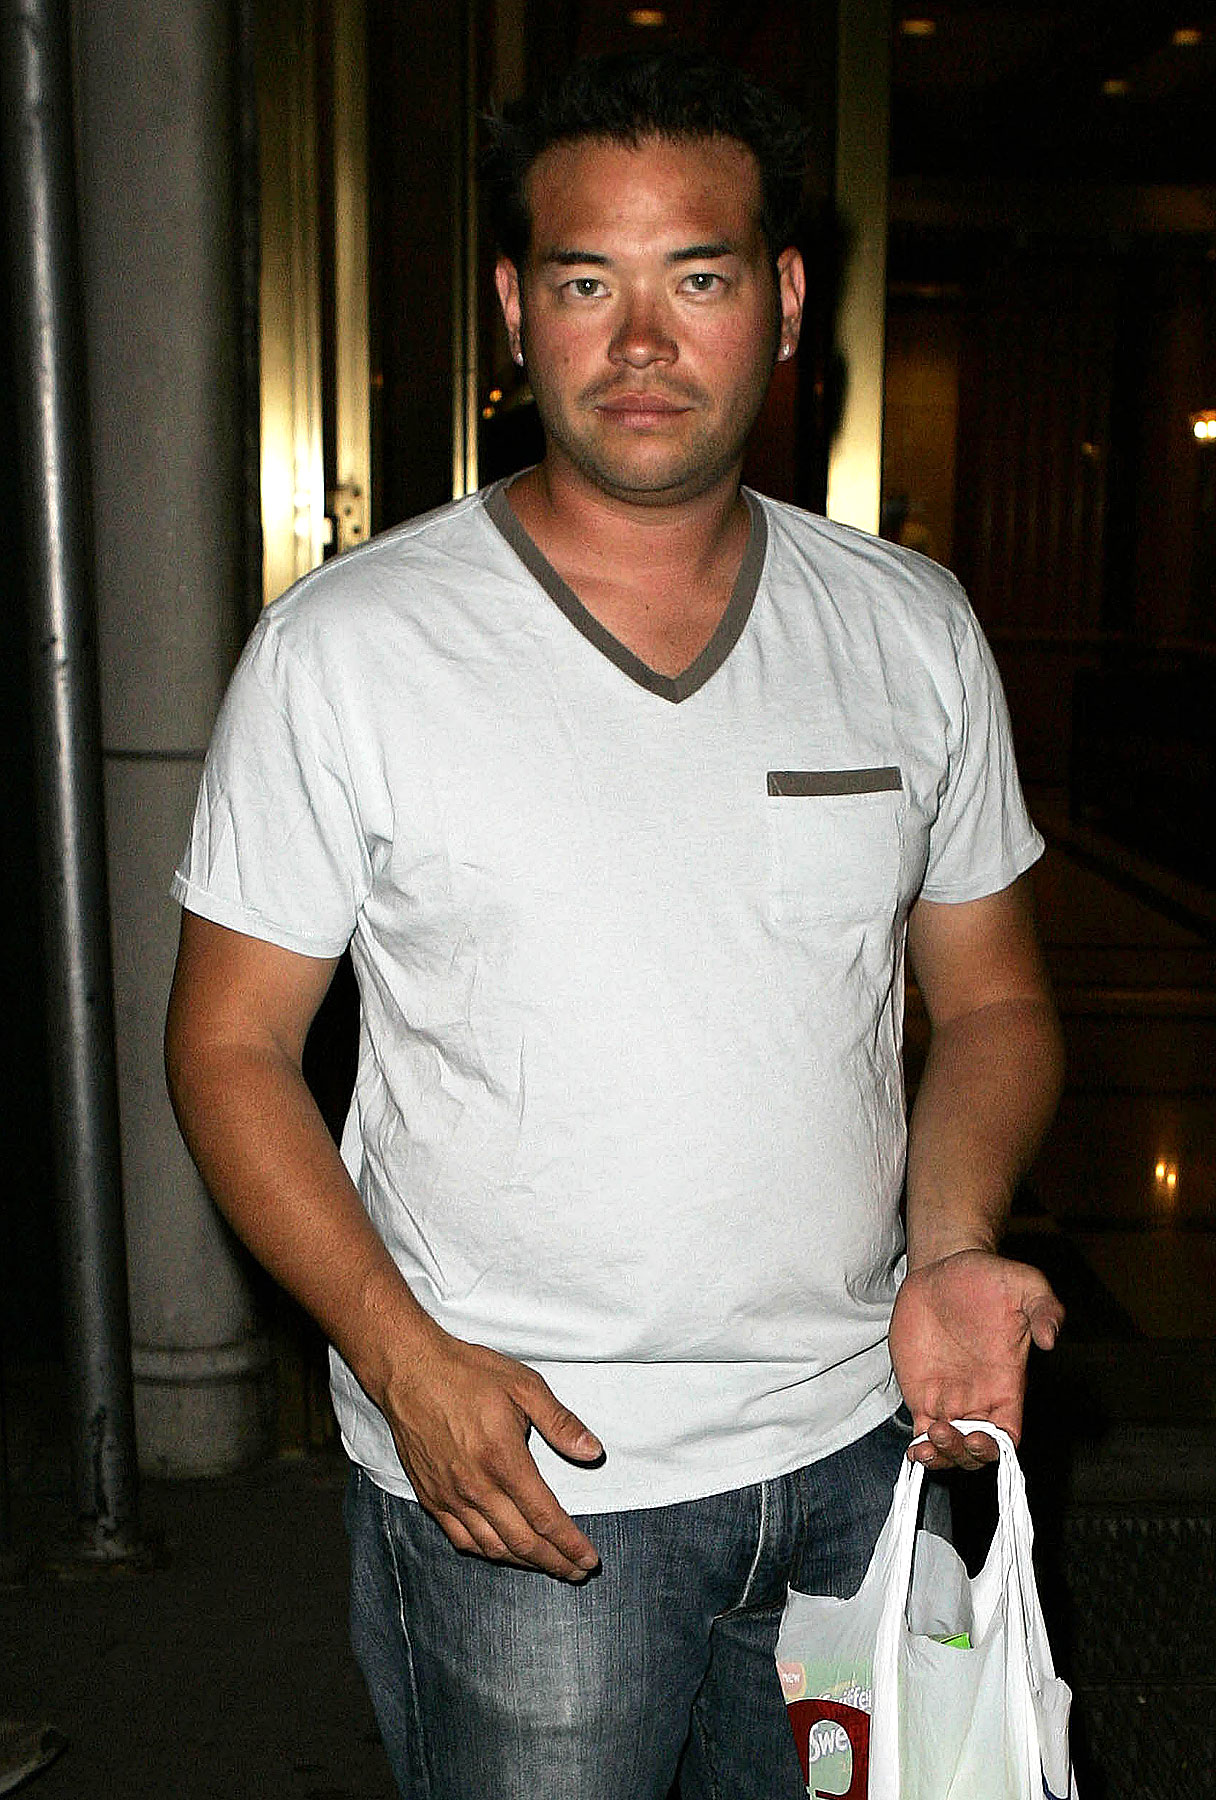 Party With Jon Gosselin In Las Vegas!